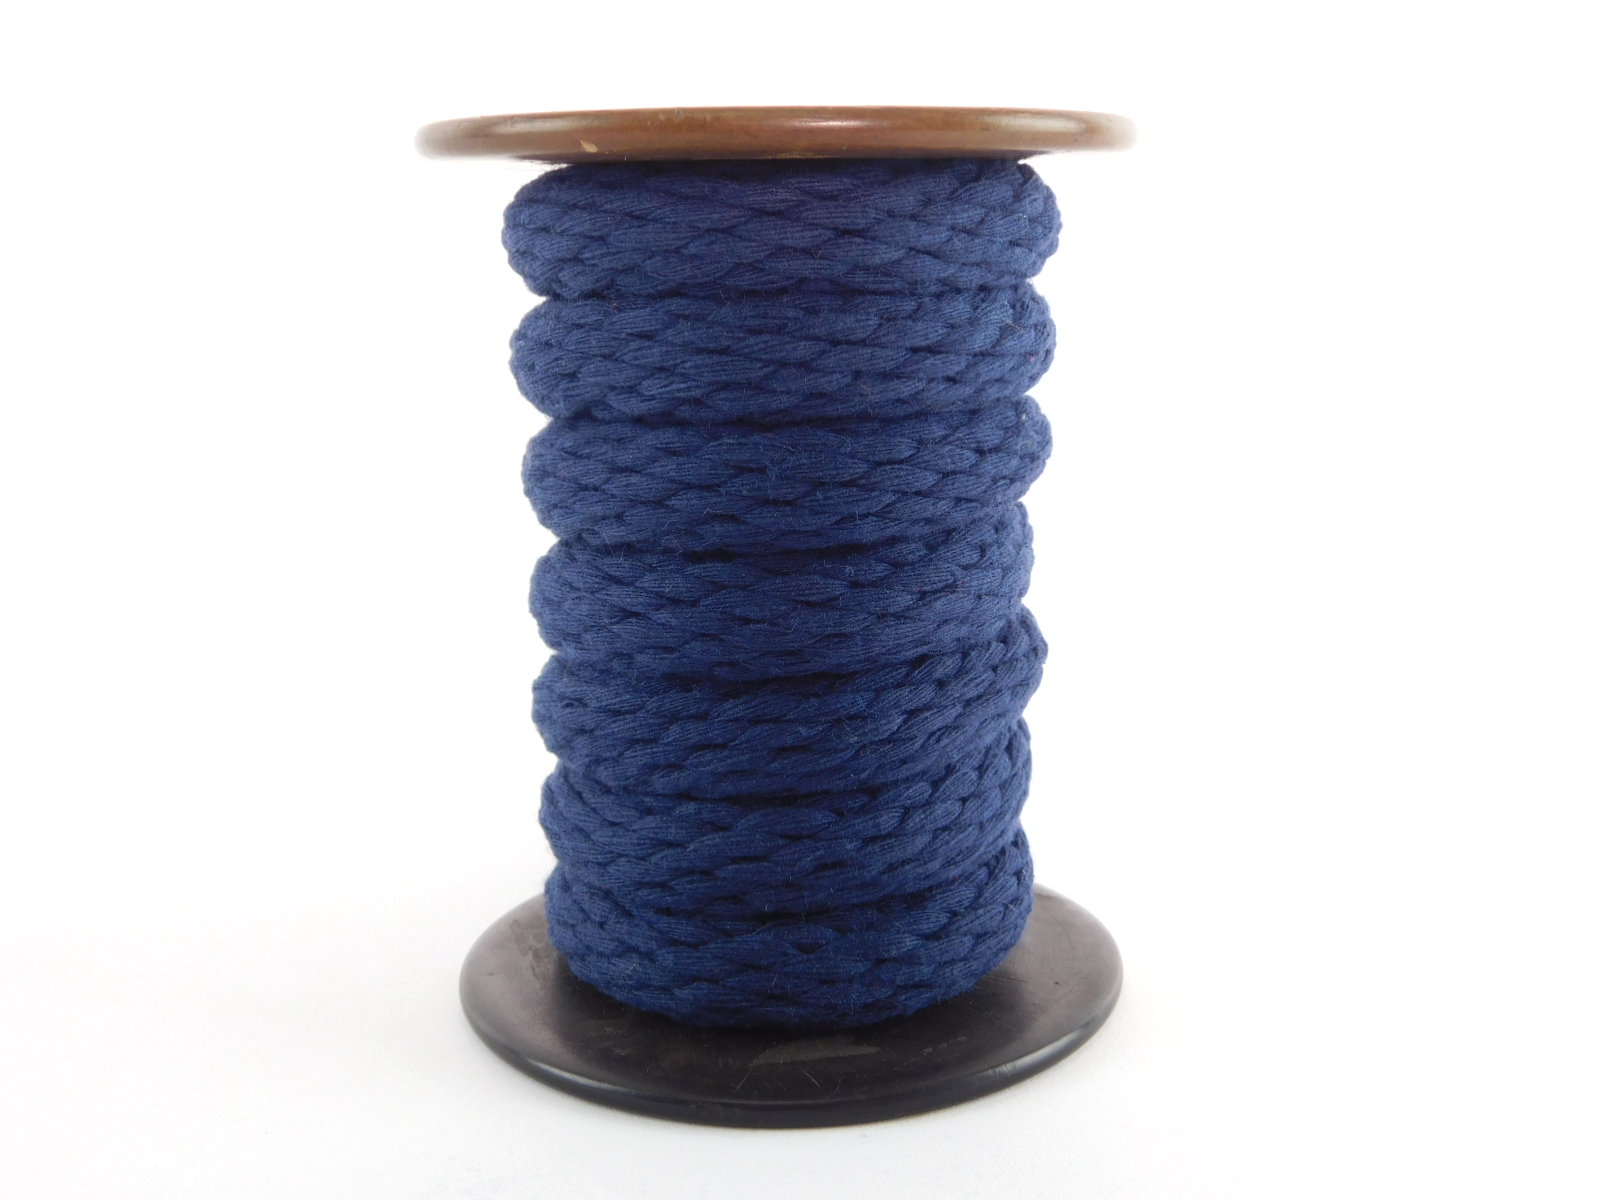 Ravenox Solid Braid Cotton RopeVariety of Colors /& LengthsMade in the USA